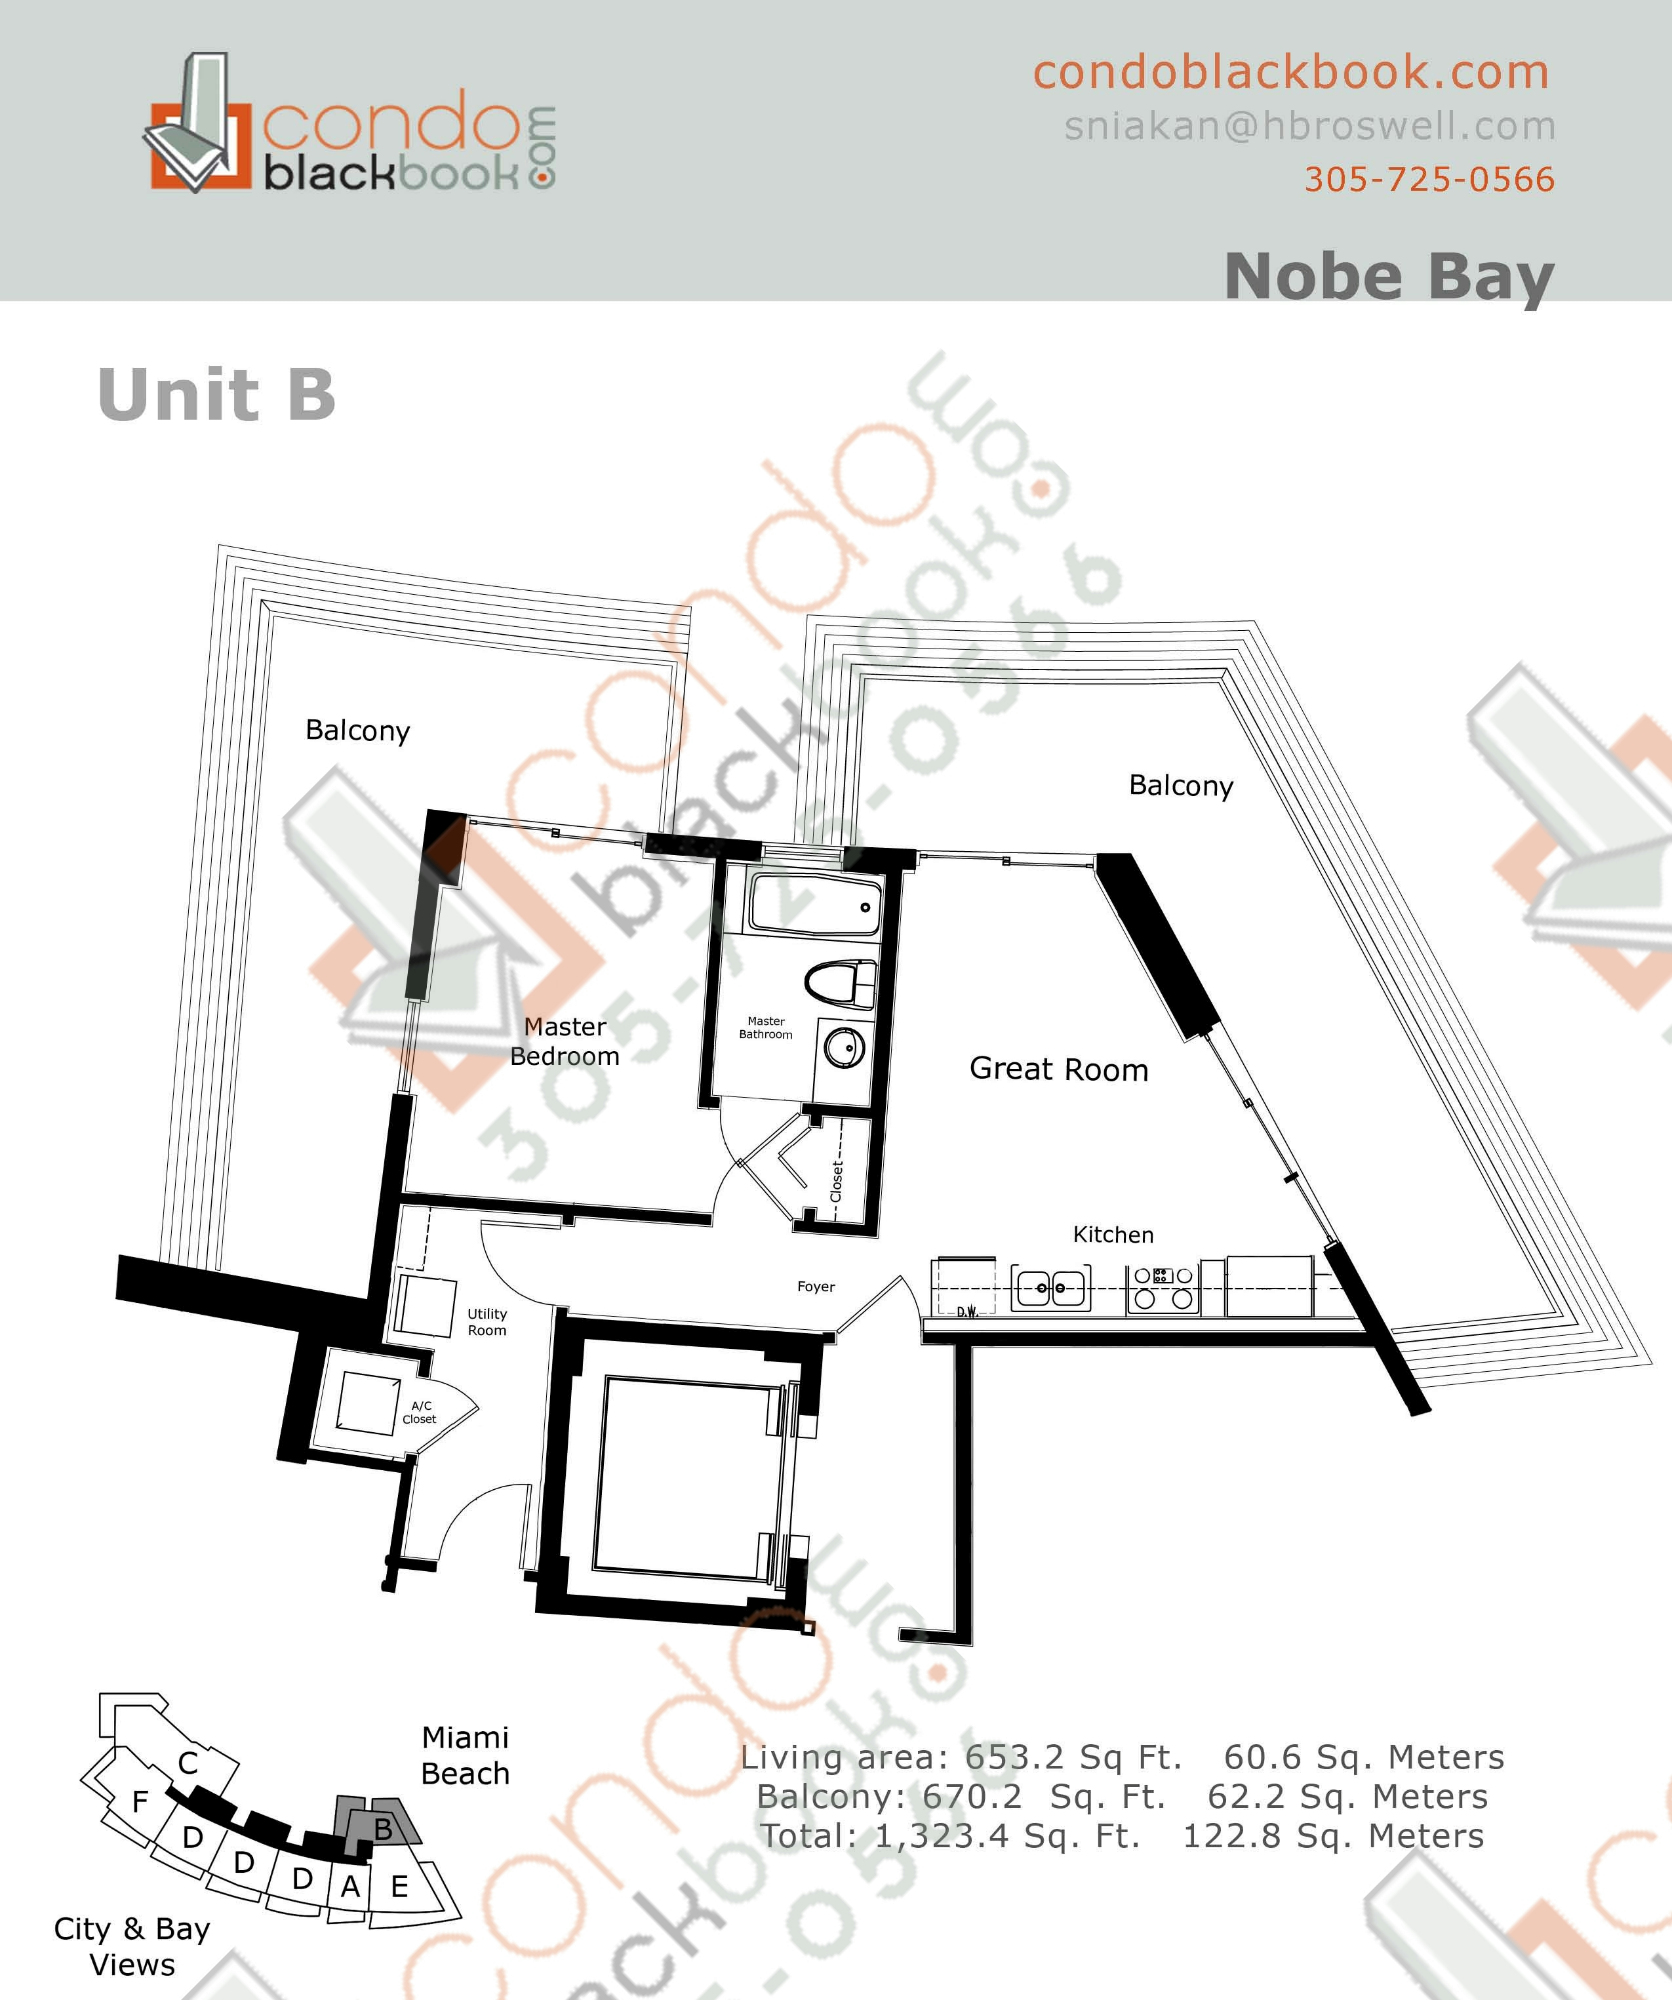 Floor plan for Eden House North Beach Miami Beach, model B, line 02, 1/1 bedrooms, 653 sq ft